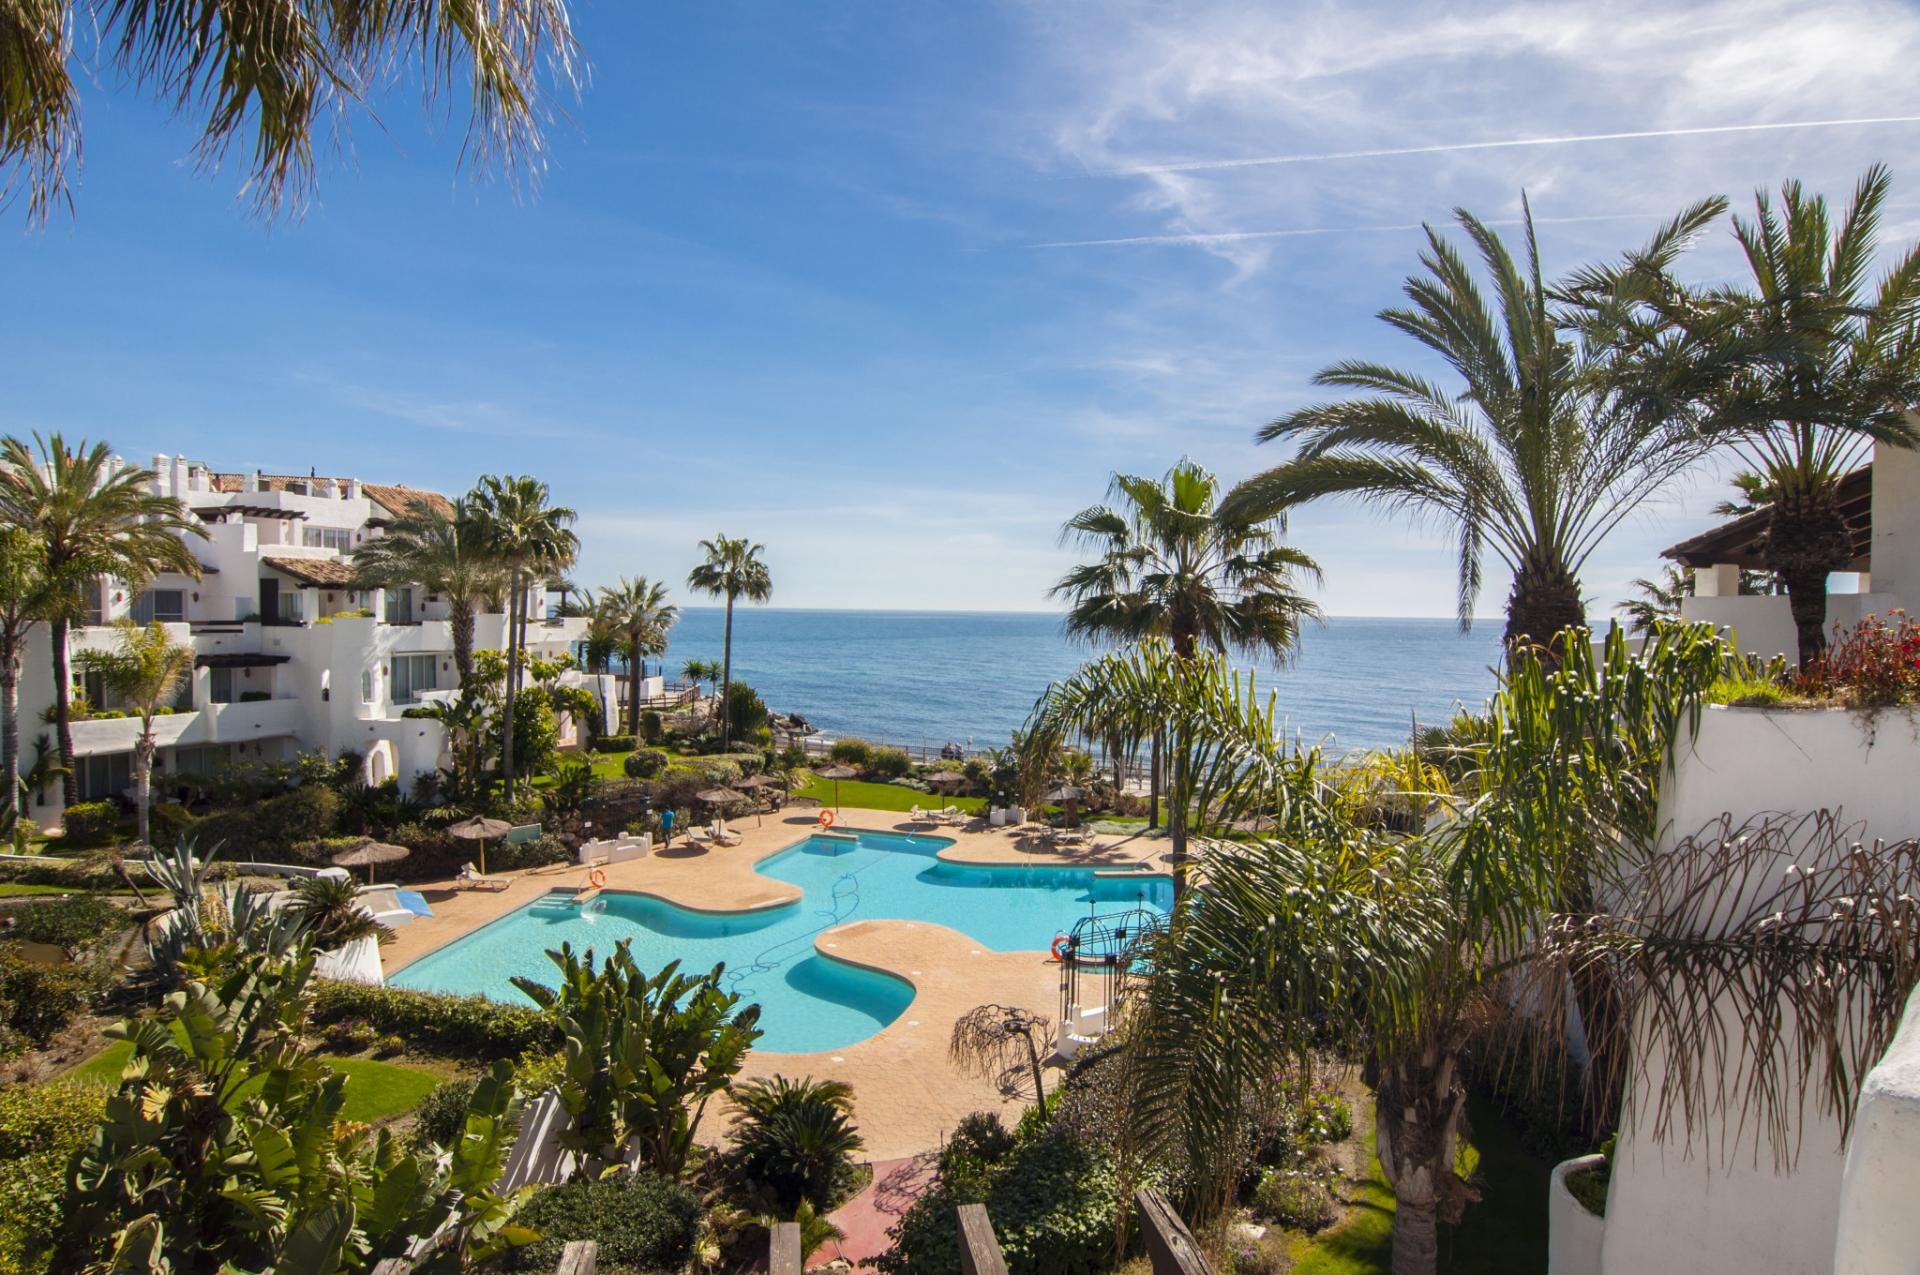 8 important steps to buy property in Spain